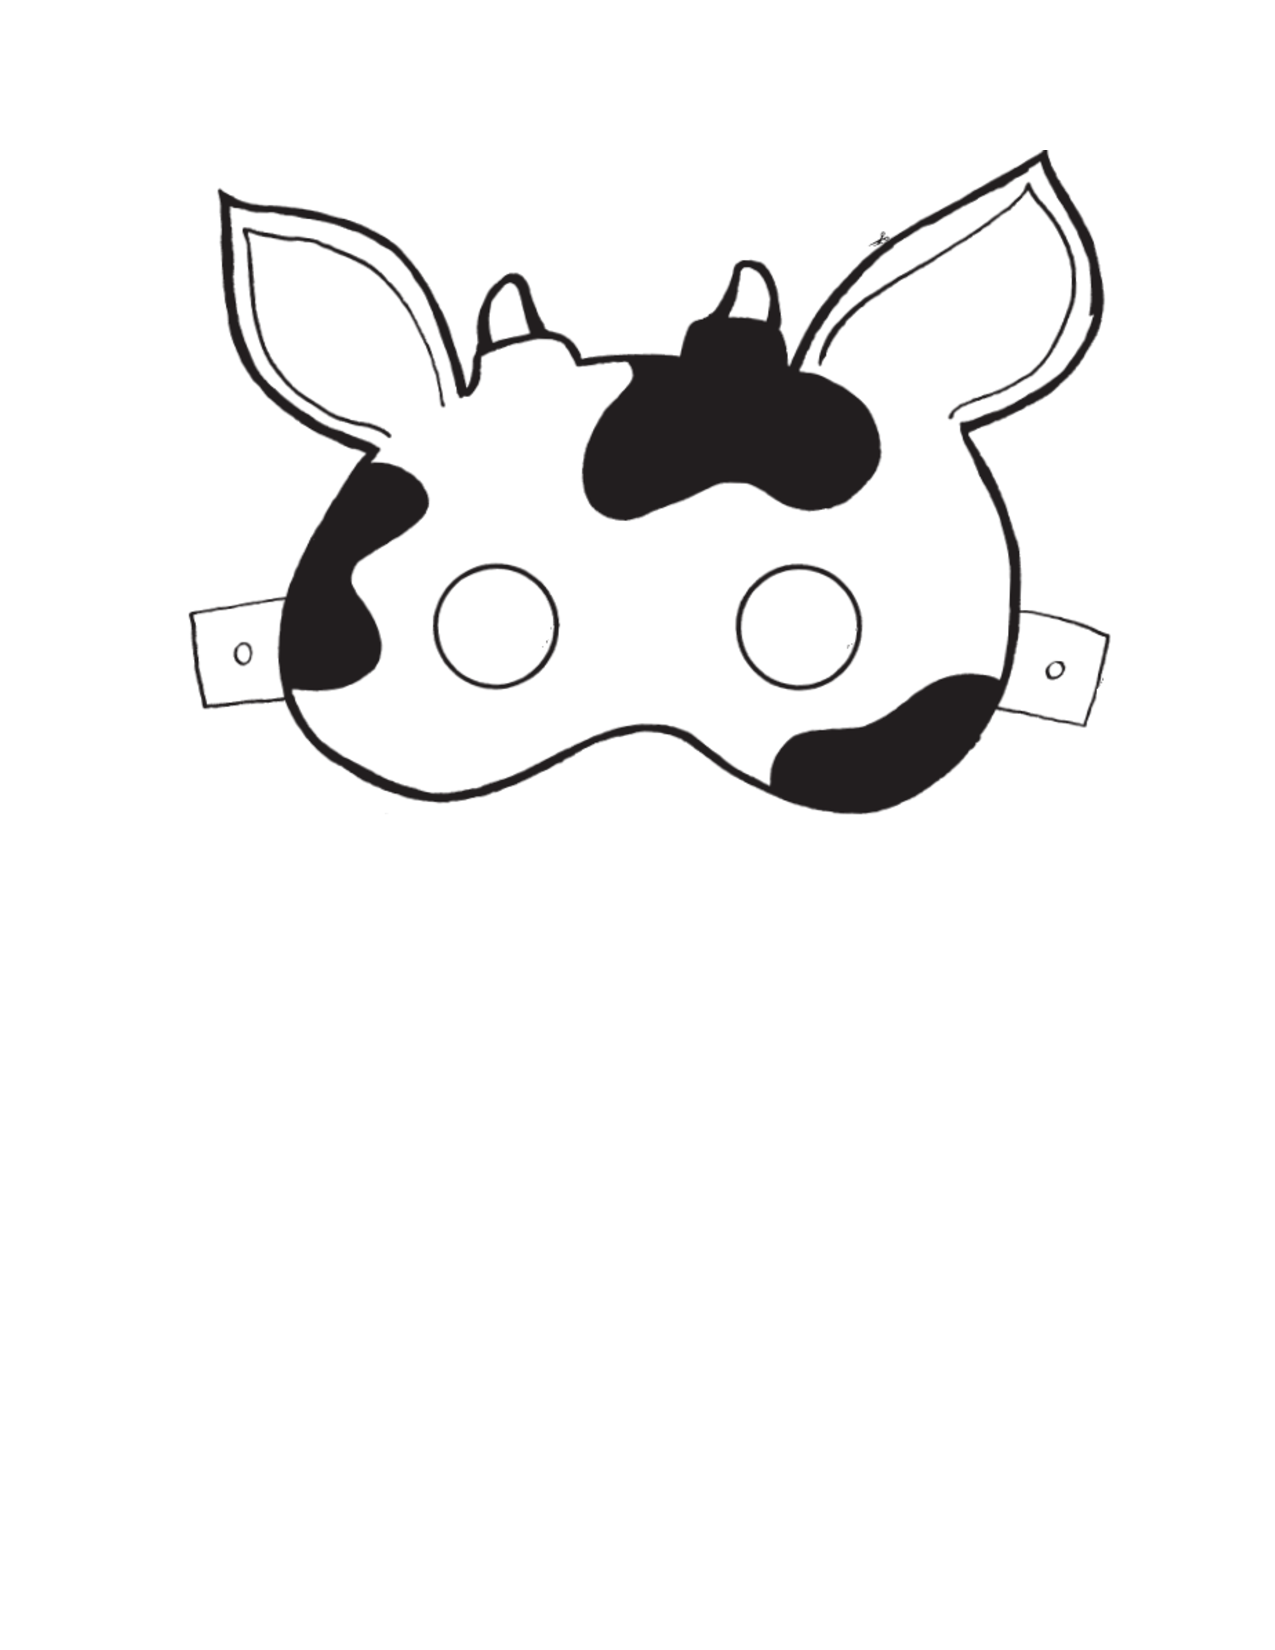 graphic about Printable Cow Mask known as minor cow mask crafts Cow mask, Printable cow mask